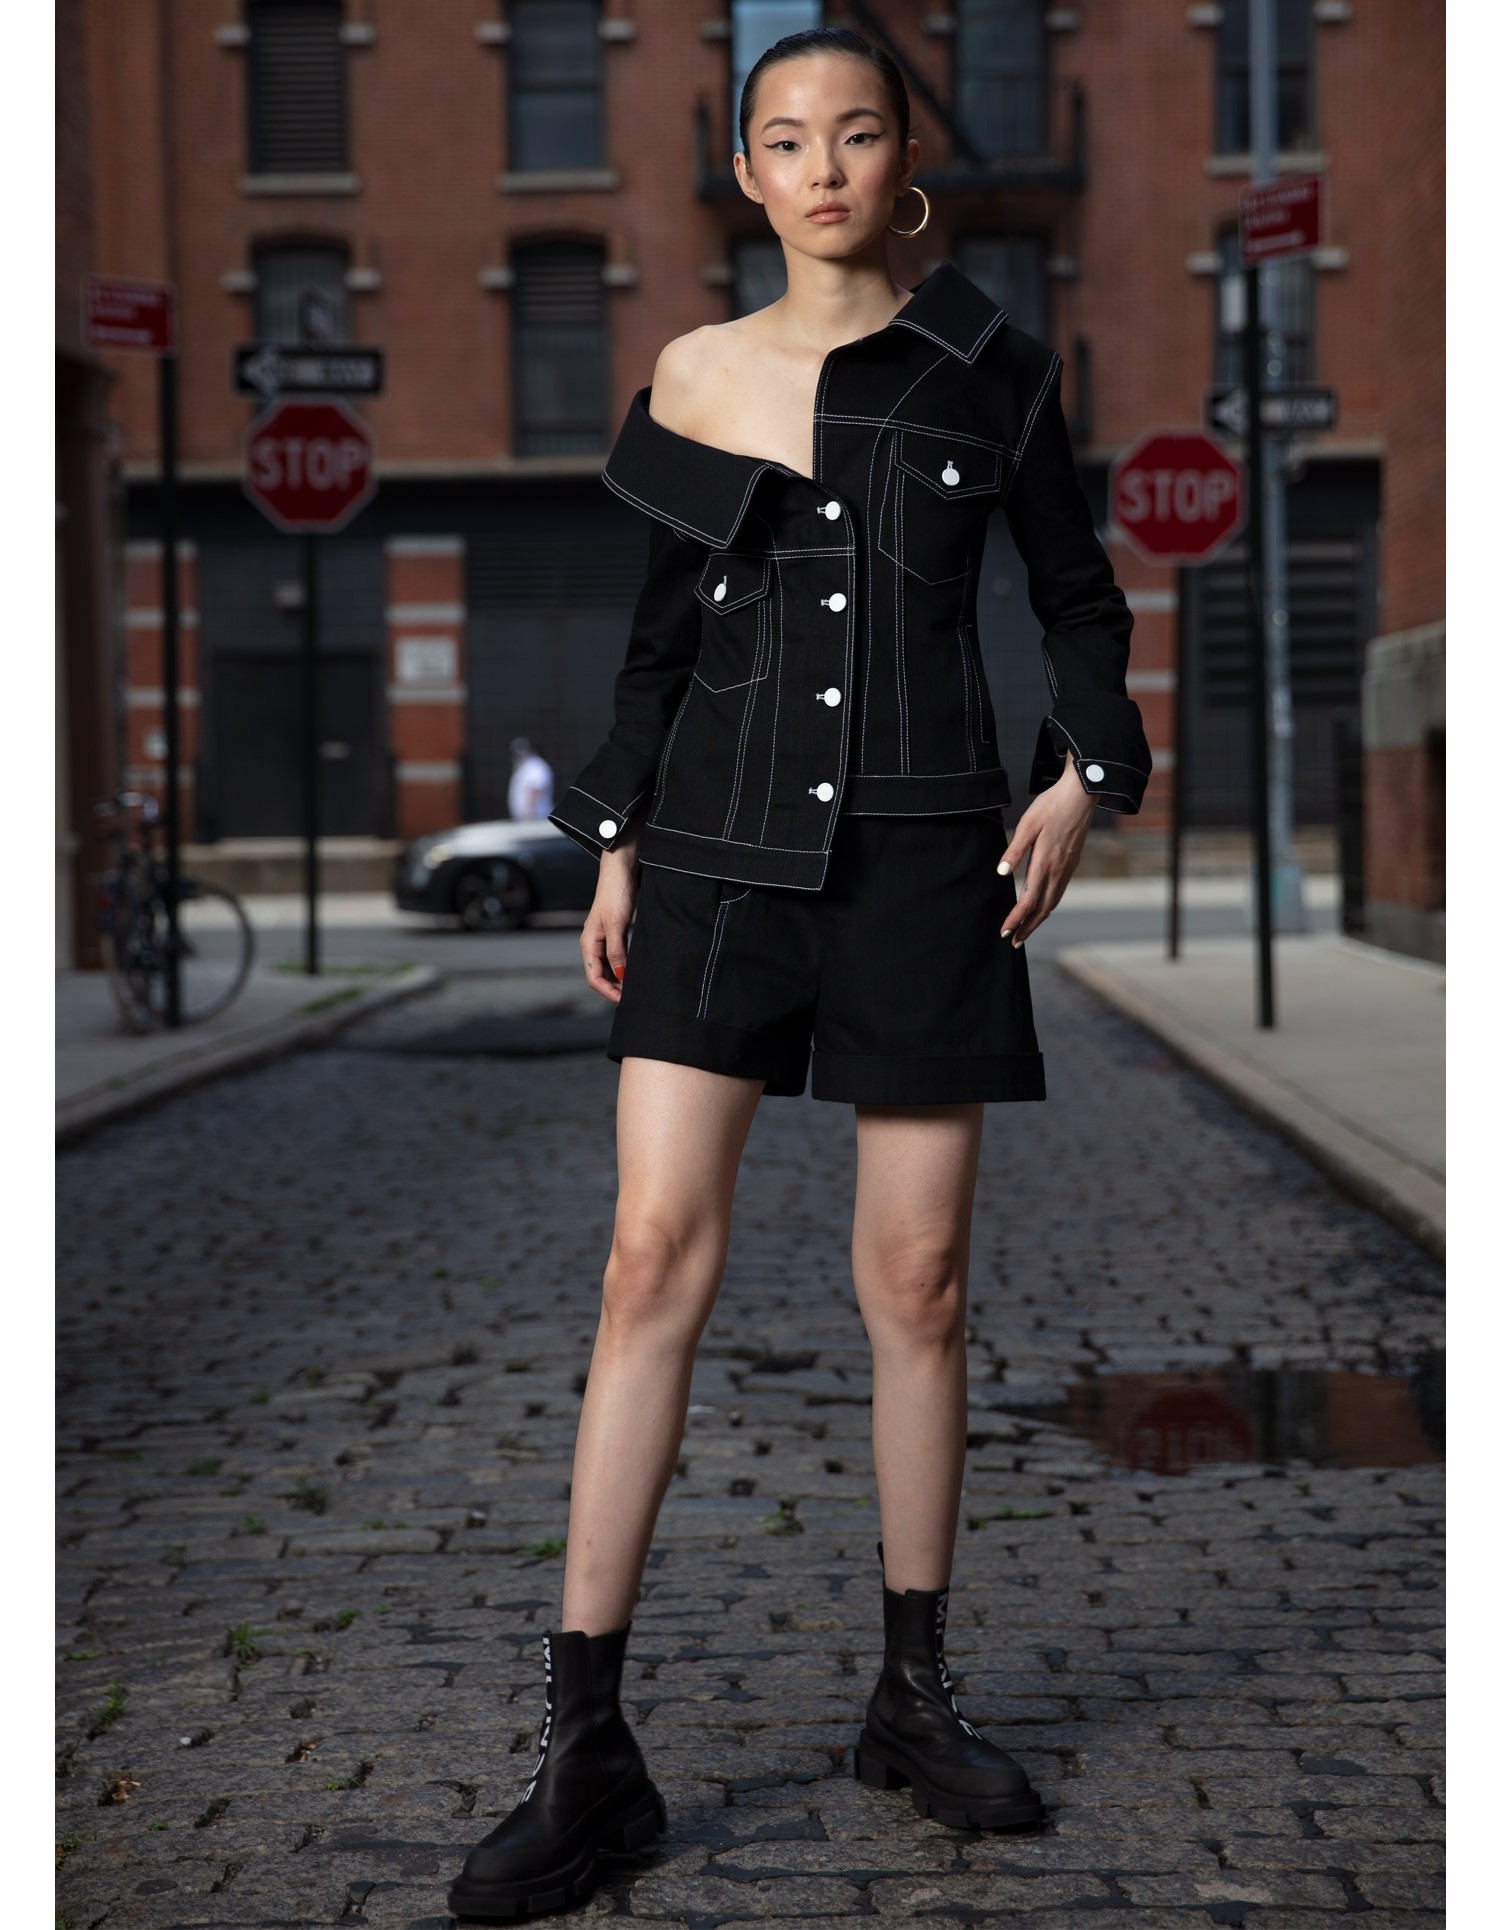 MONSE Crooked Denim Shorts in Black on Model Front View